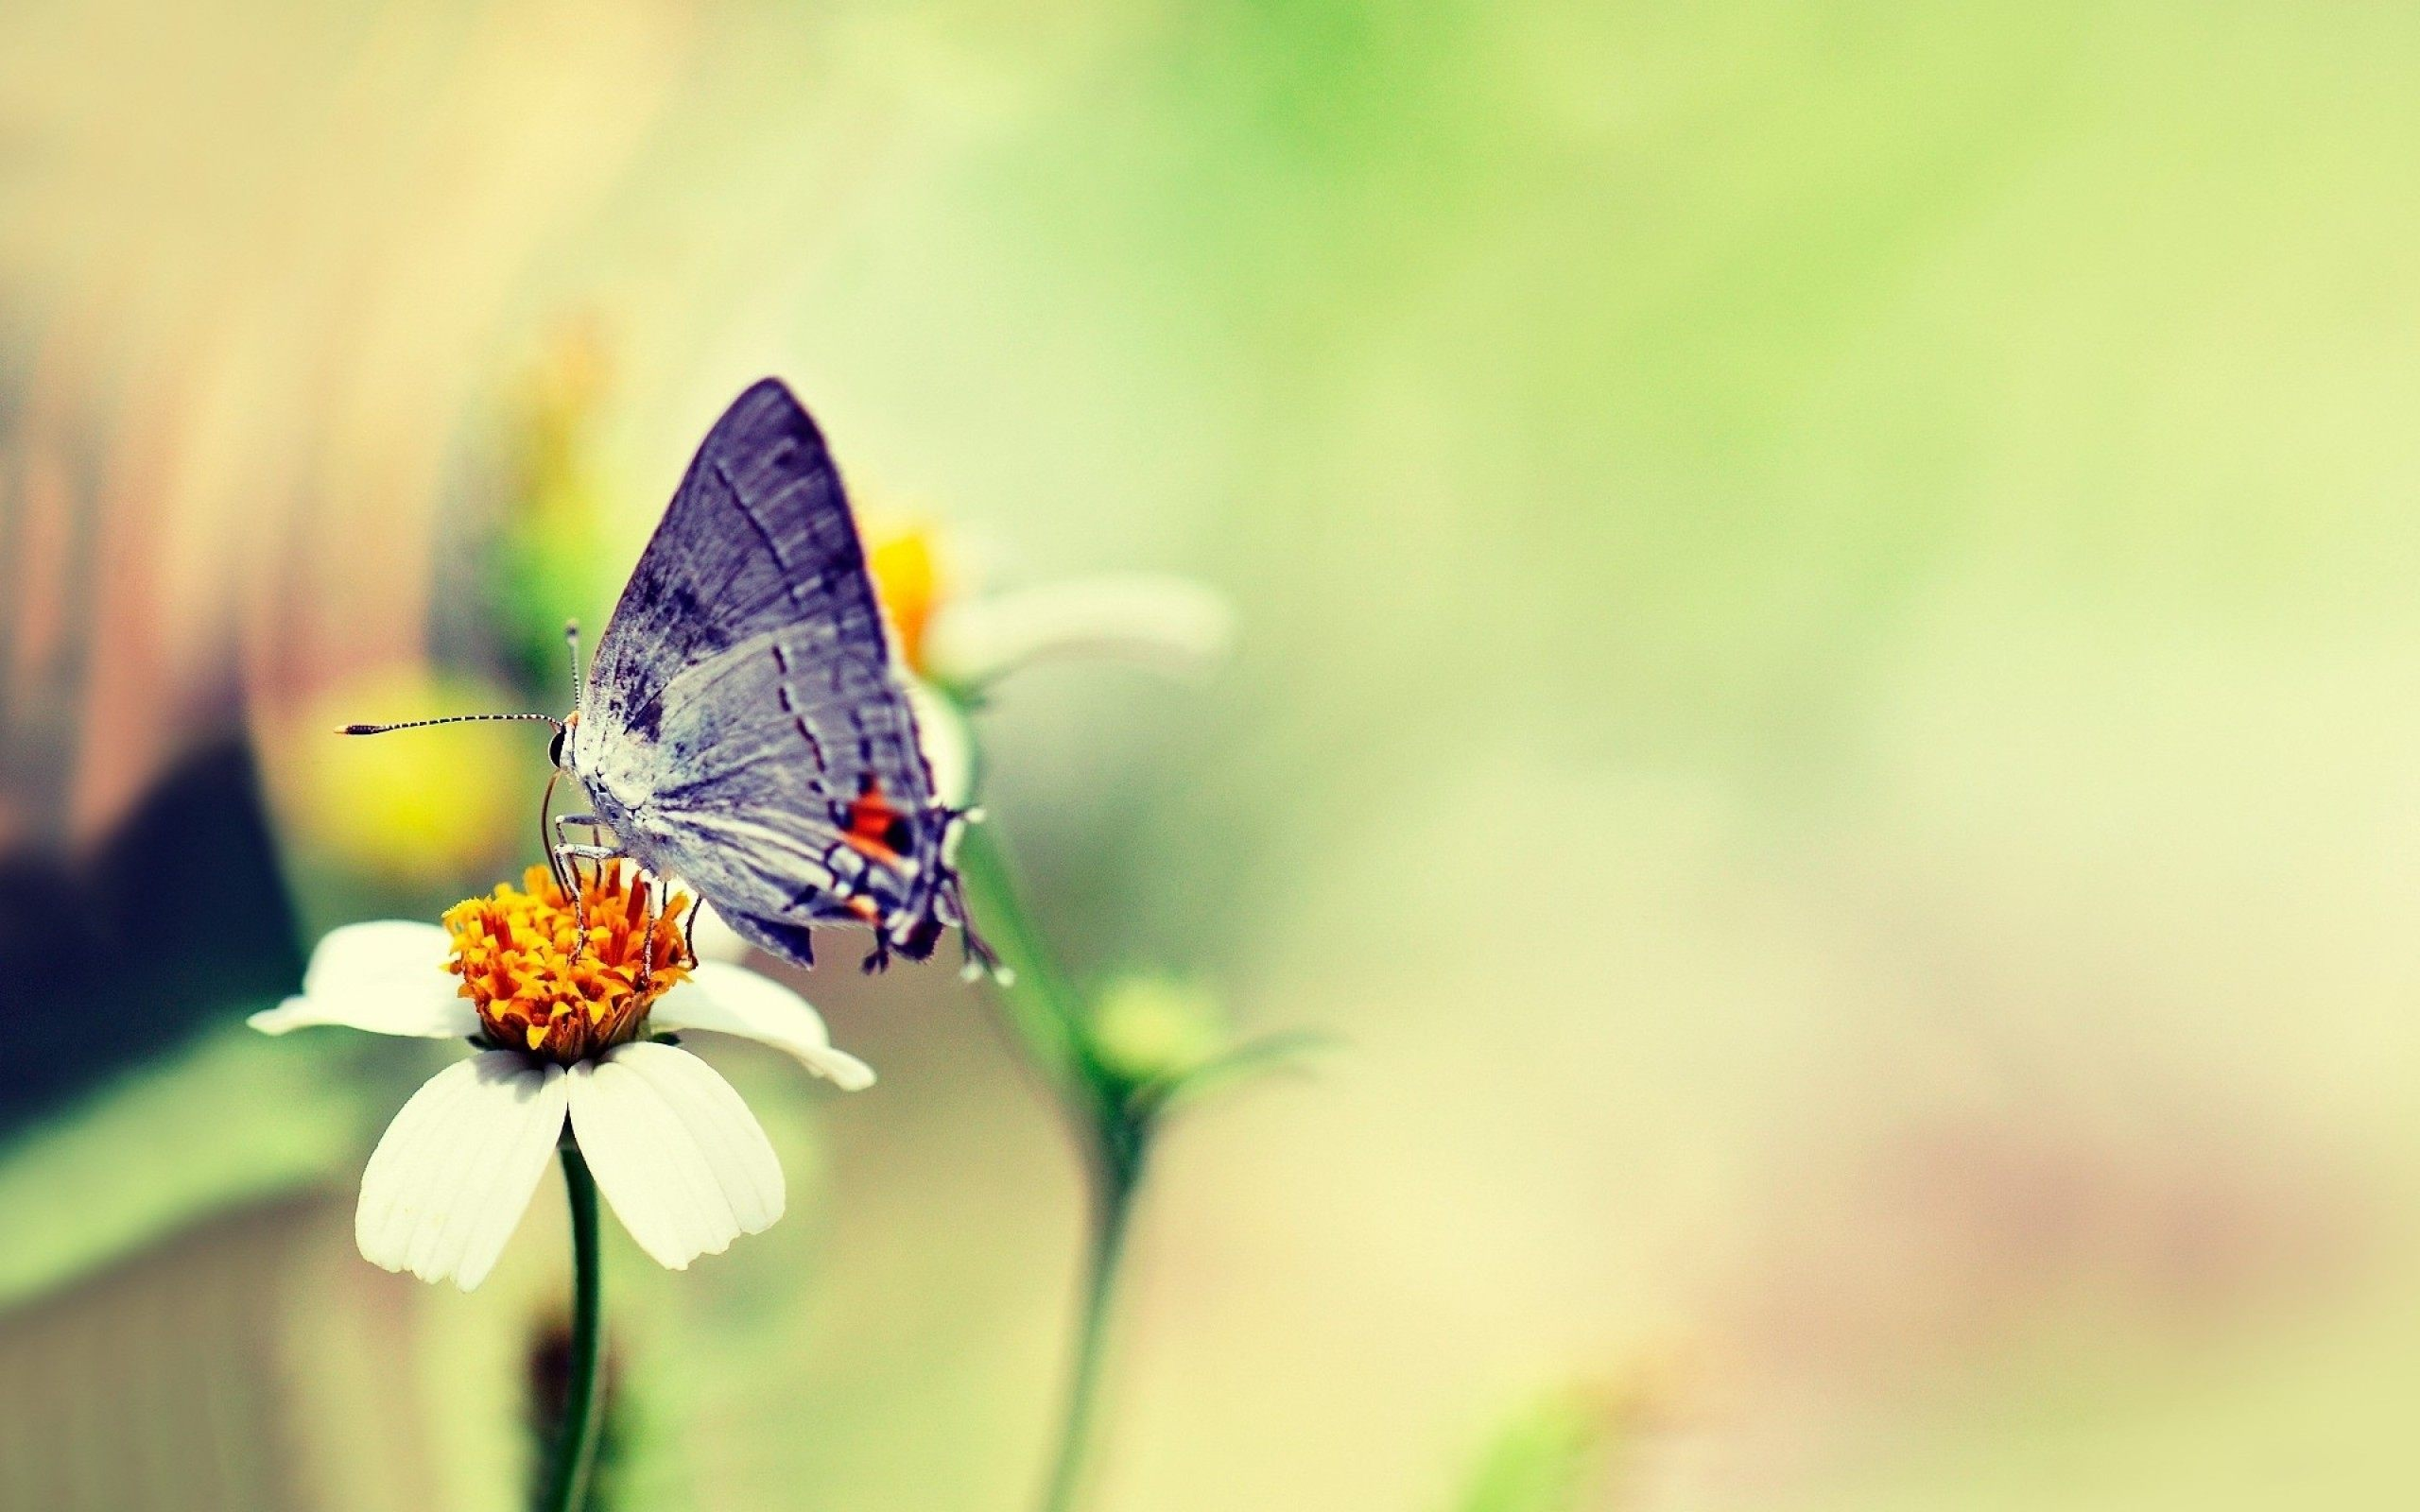 Butterfly-On-Flower-Wallpaper.